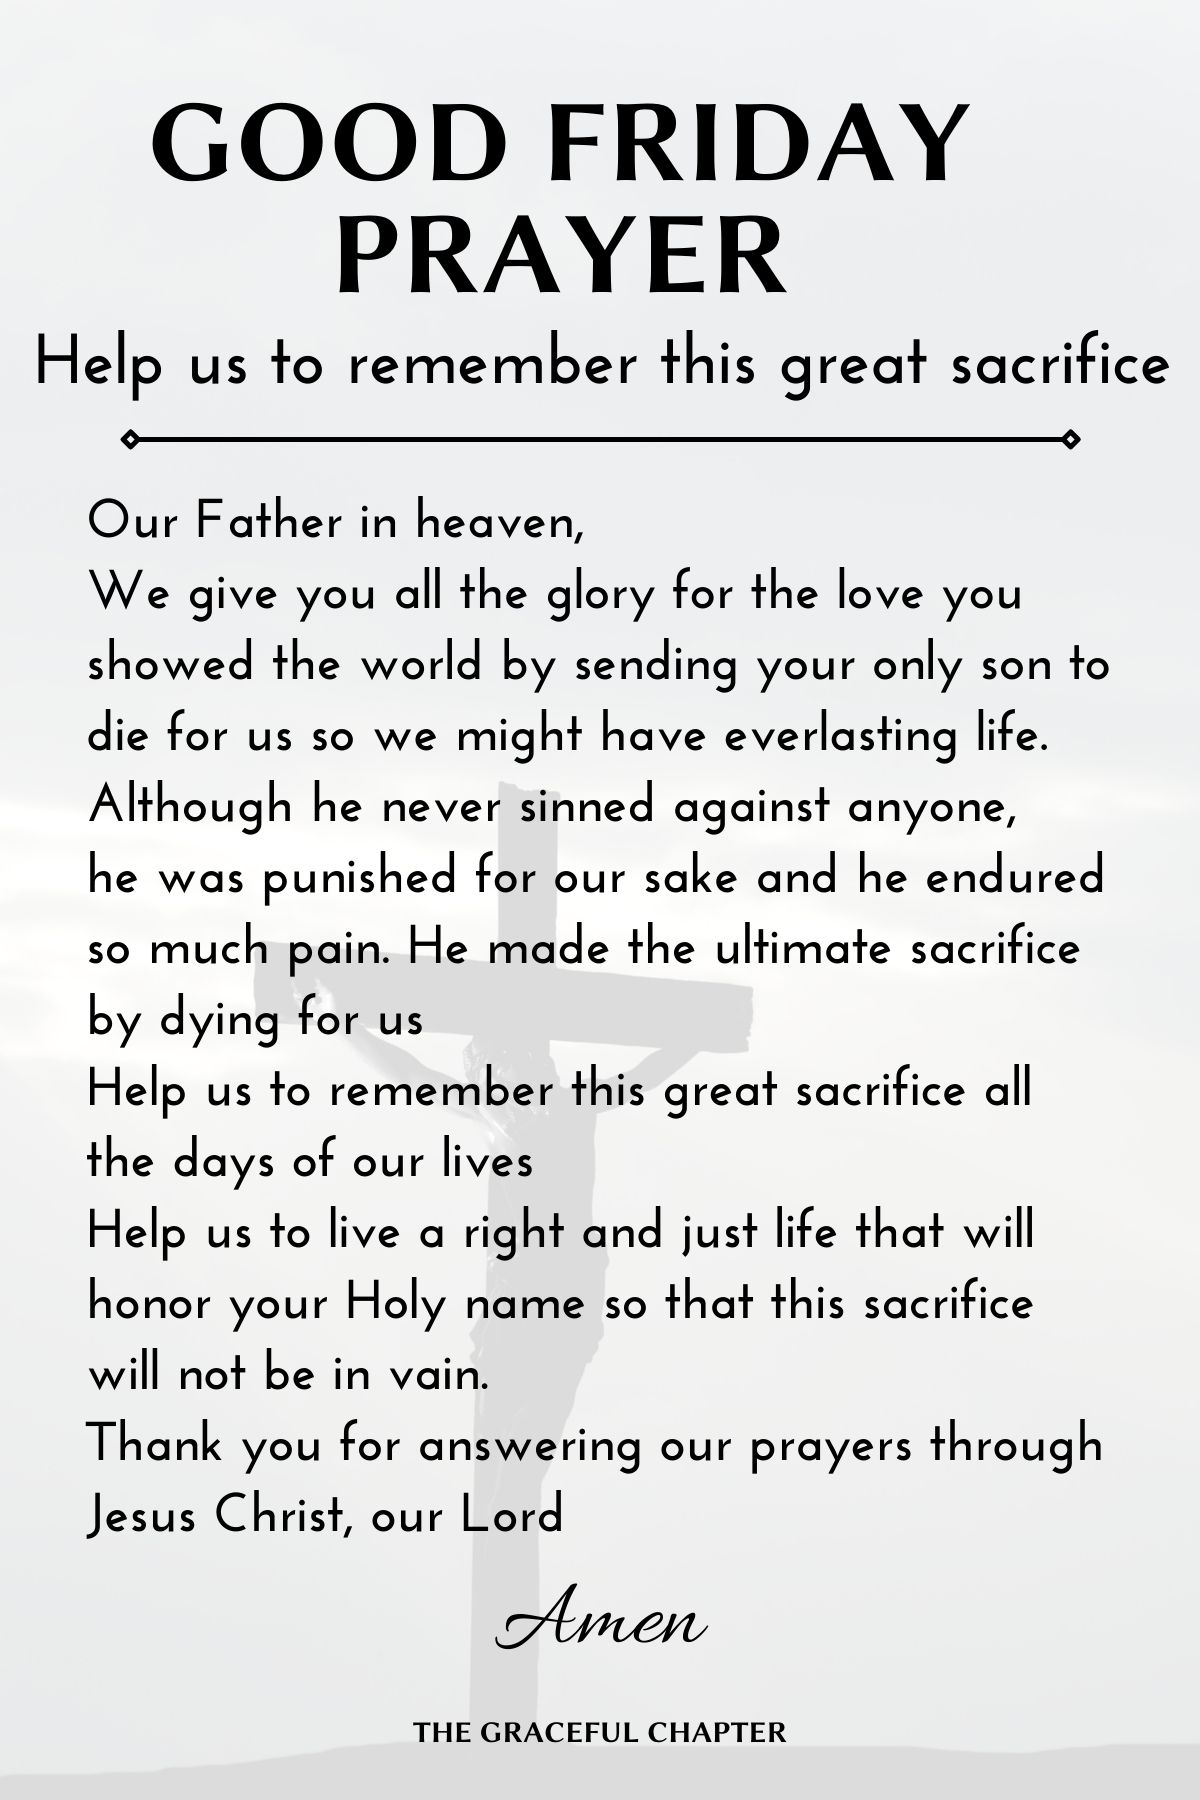 Good Friday Prayers - Help us to remember this great sacrifice